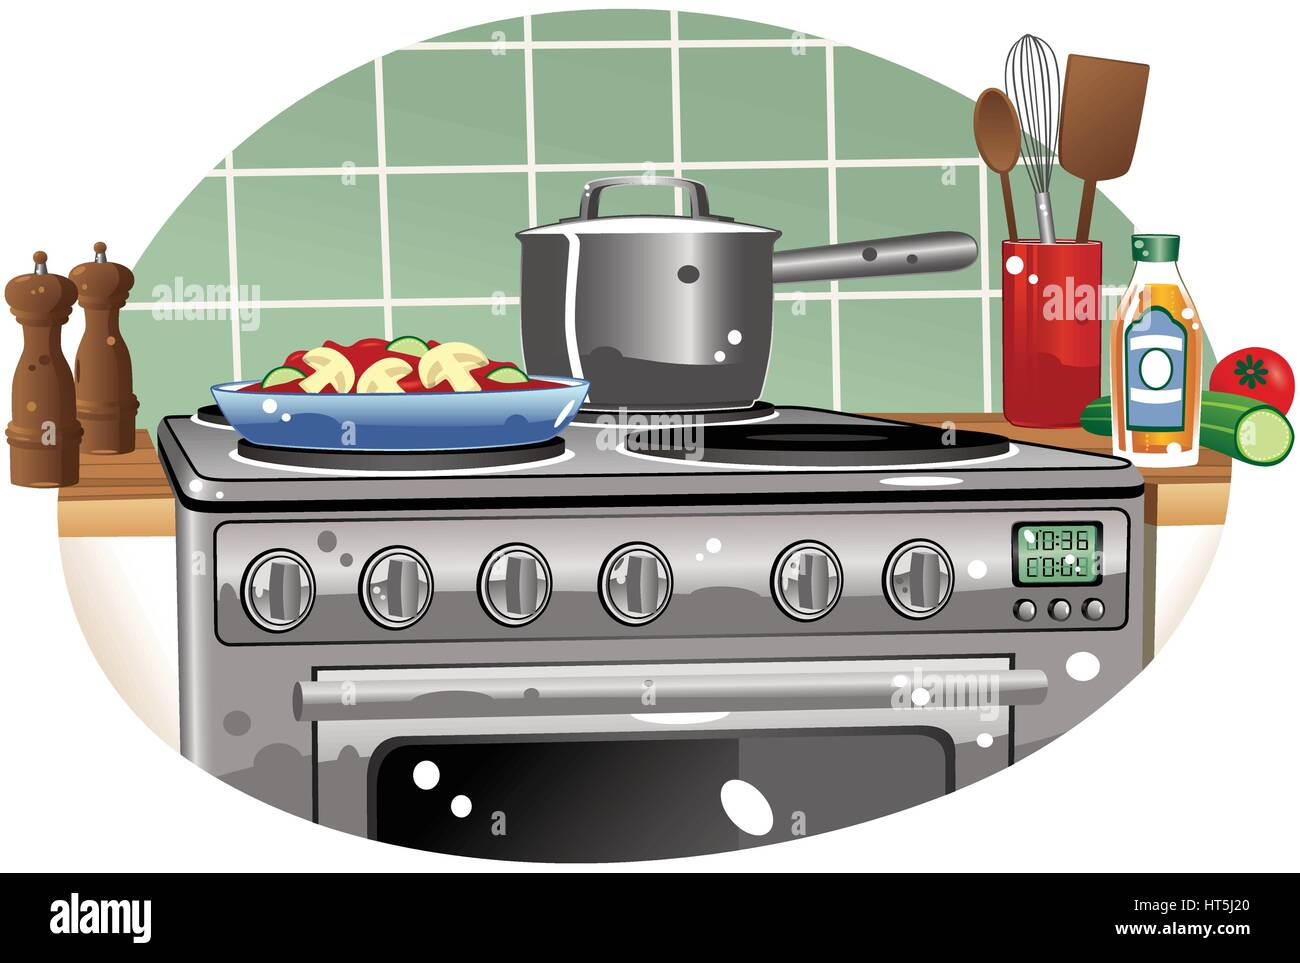 Dessus De Cuisiniere Vitroceramique electric cooker hob photos & electric cooker hob images - alamy